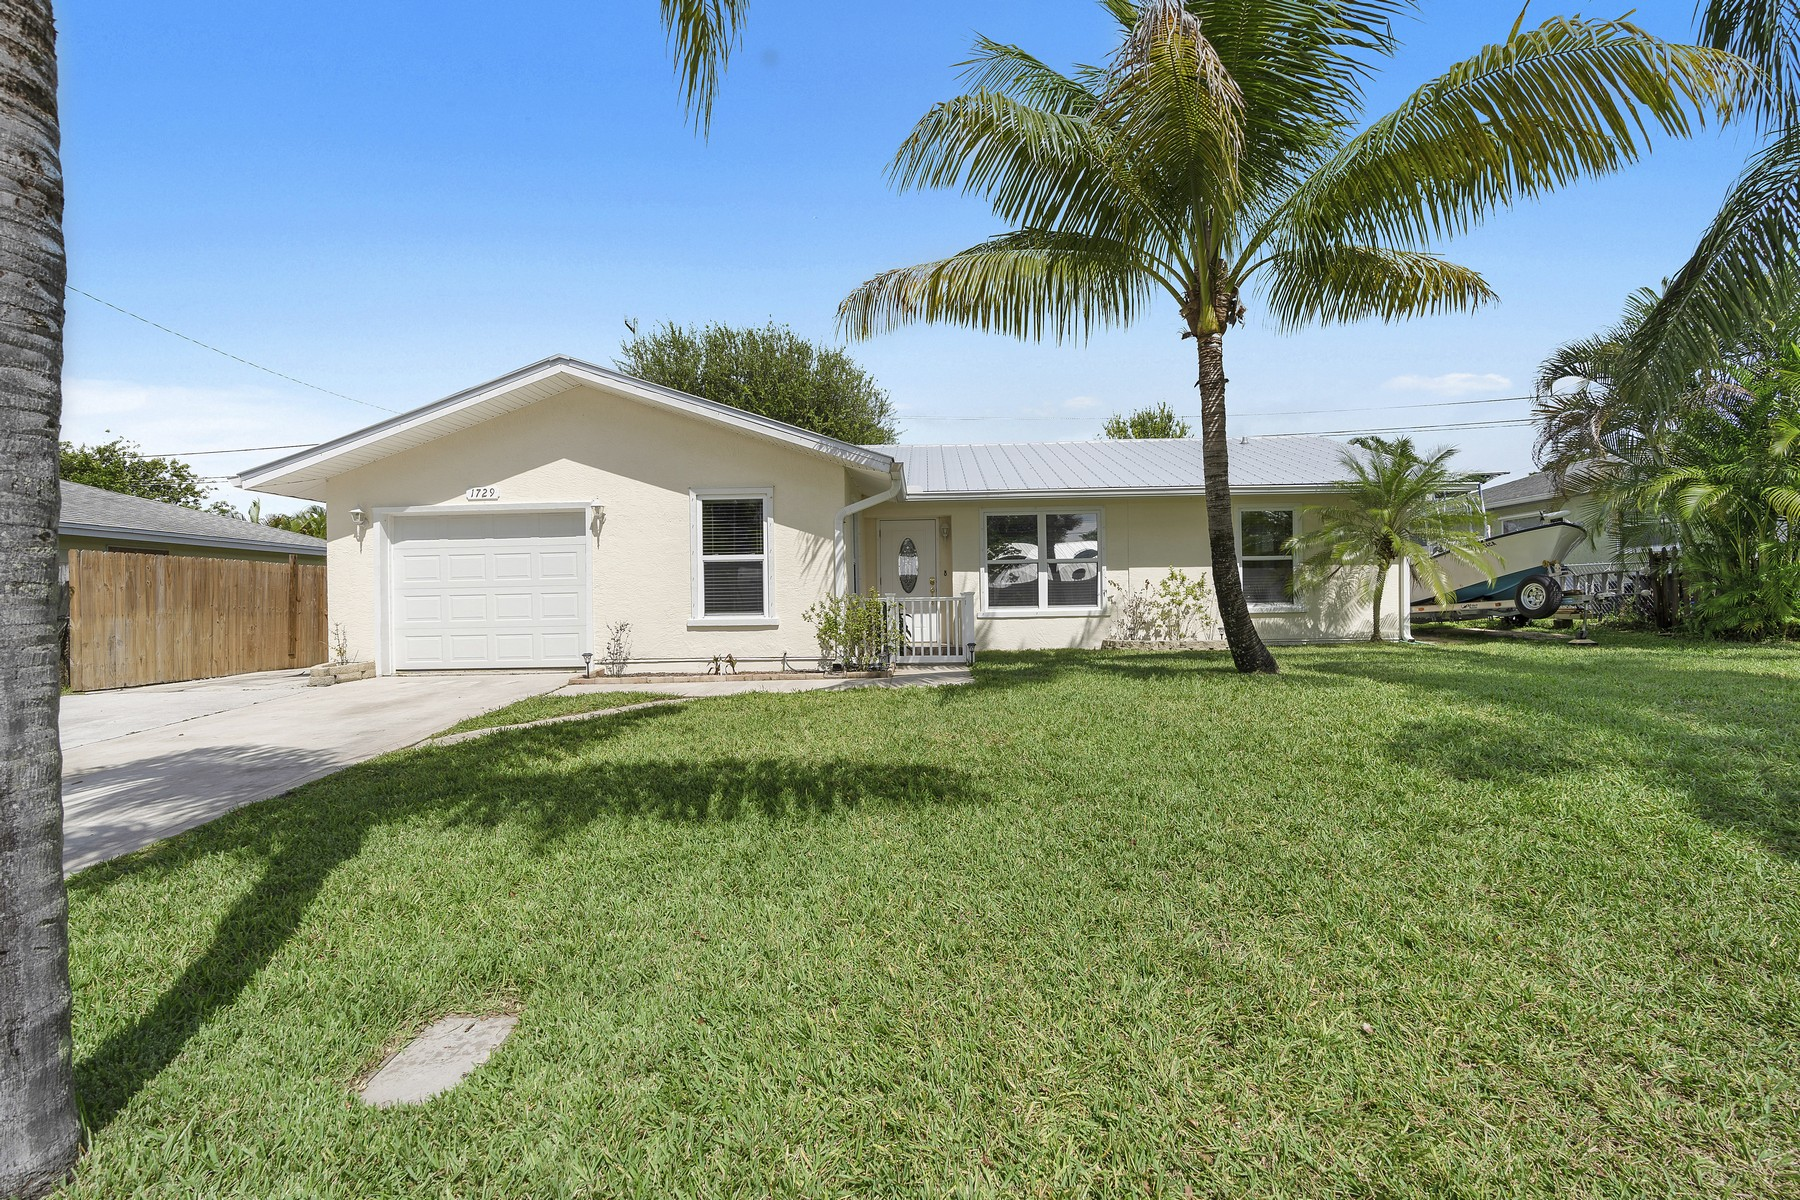 Single Family Homes για την Πώληση στο Meticulously Maintained and Updated! 1729 NE 23rd Terrace Jensen Beach, Φλοριντα 34957 Ηνωμένες Πολιτείες